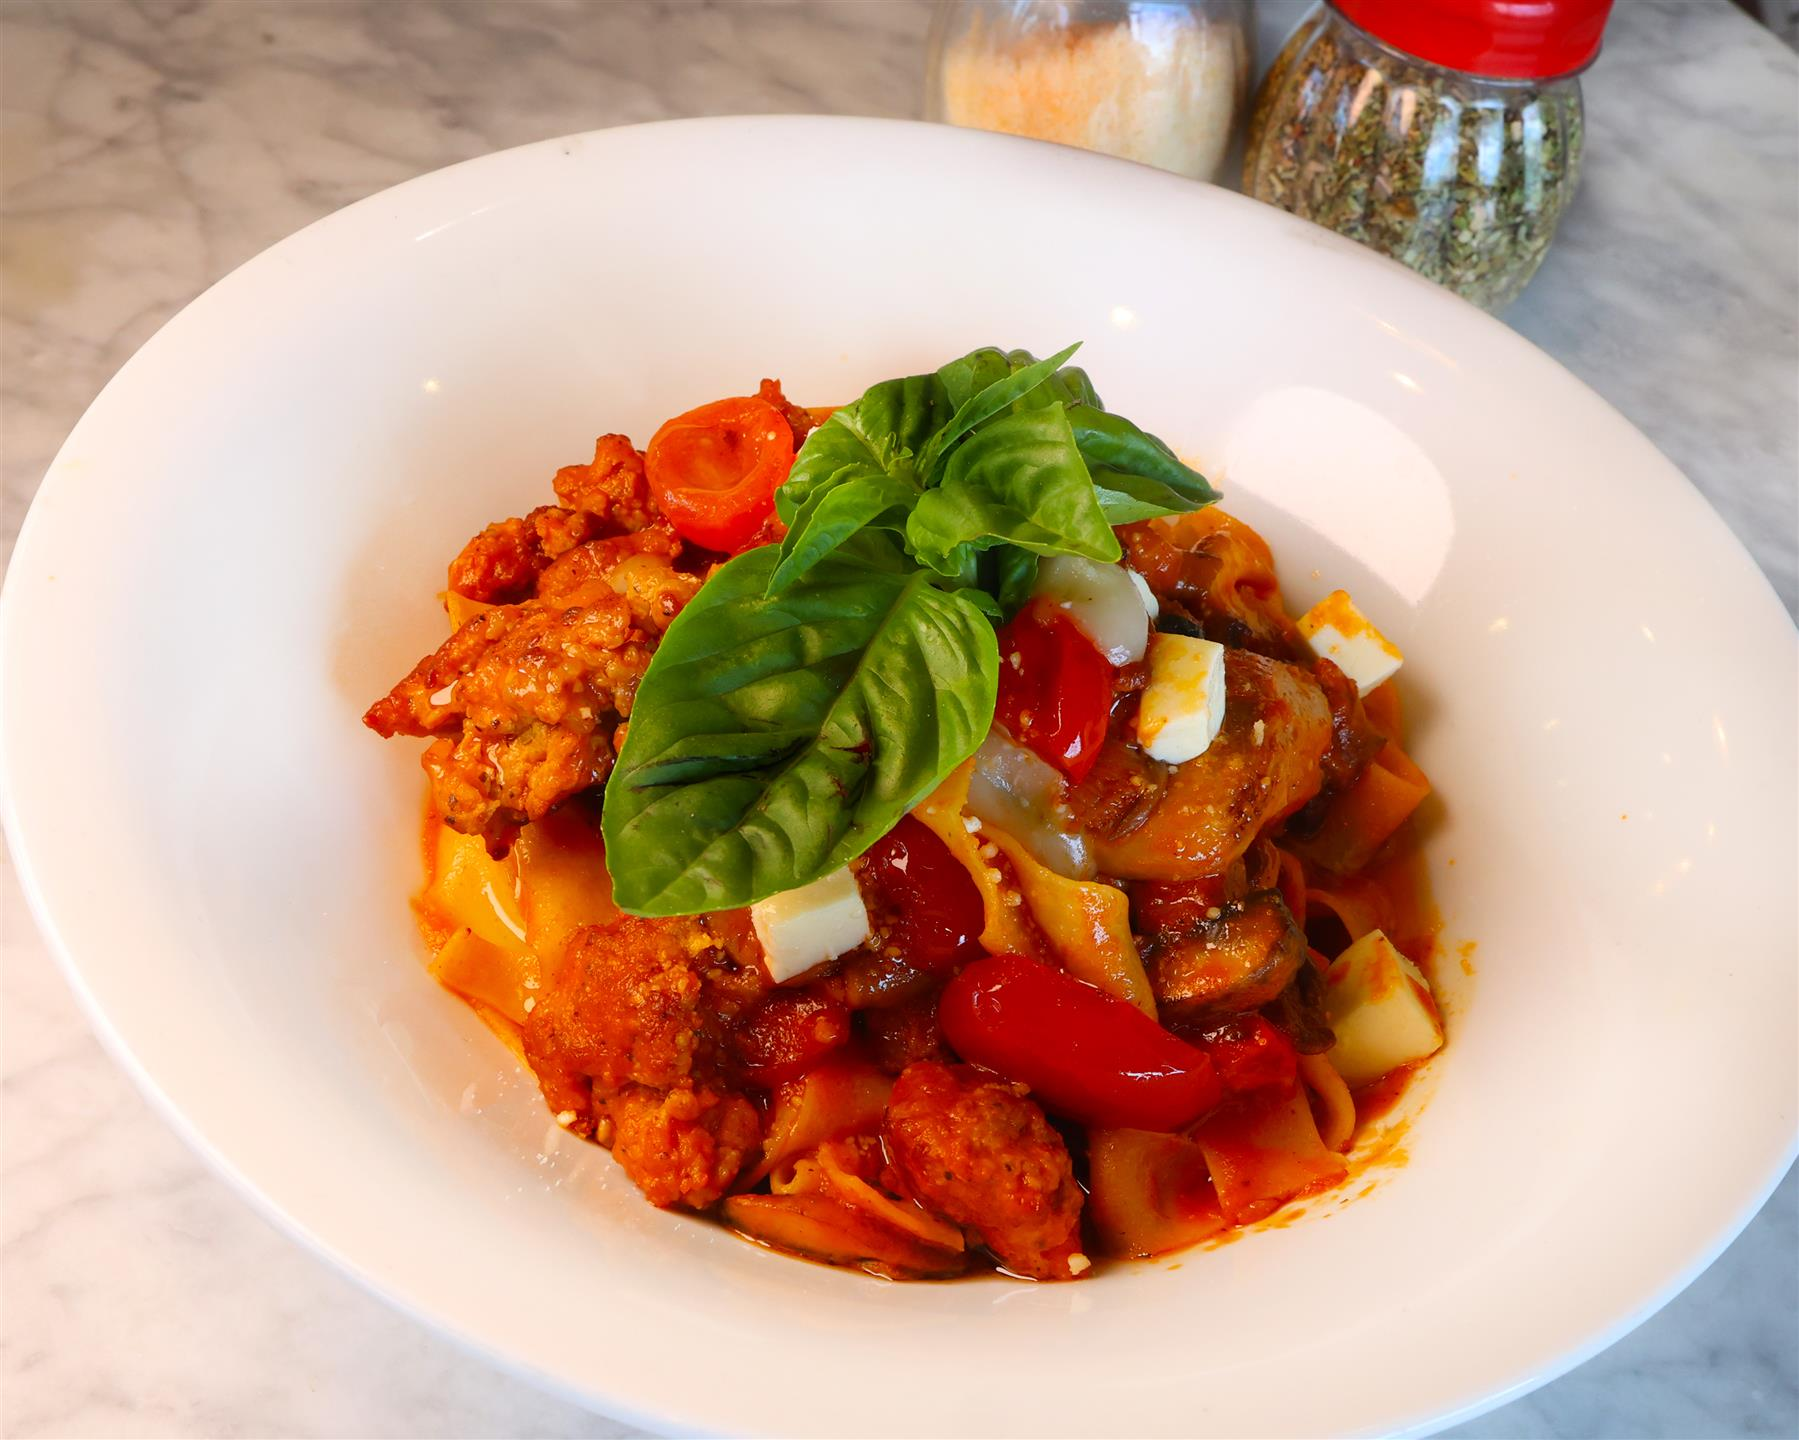 Pappardelle Alla Siciliana with Fresh Pappardelle Pasta with Cherry Tomatoes, Assorted Mushrooms, Eggplant and Italian Sausage topped with Homemade Melted Mozzarella